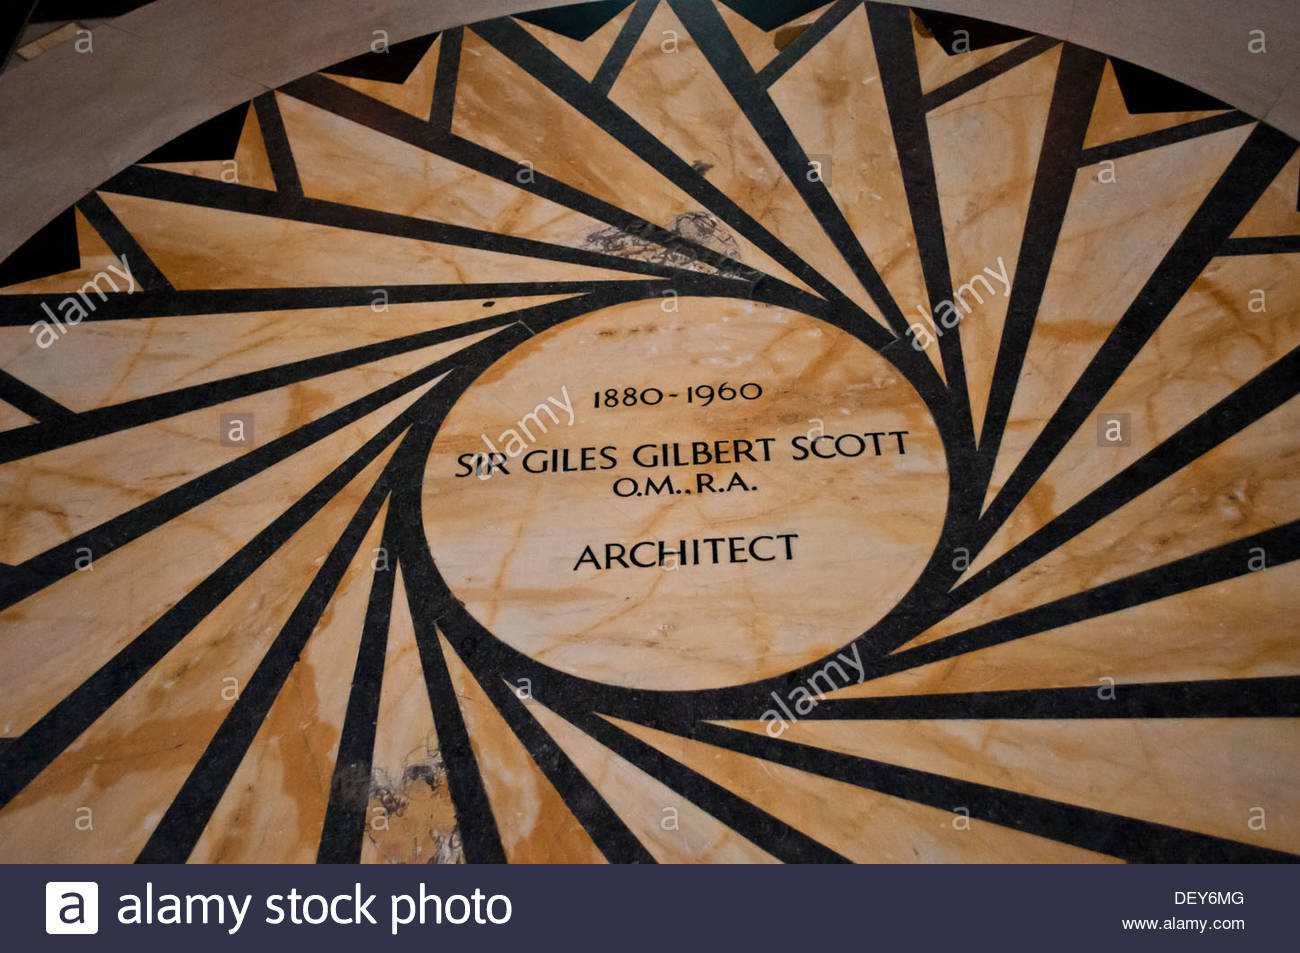 Plaque commemorating the architect of Liverpool Anglican Cathedral Sir Giles Gilbert Scott, Liverpool, UK - Stock Image